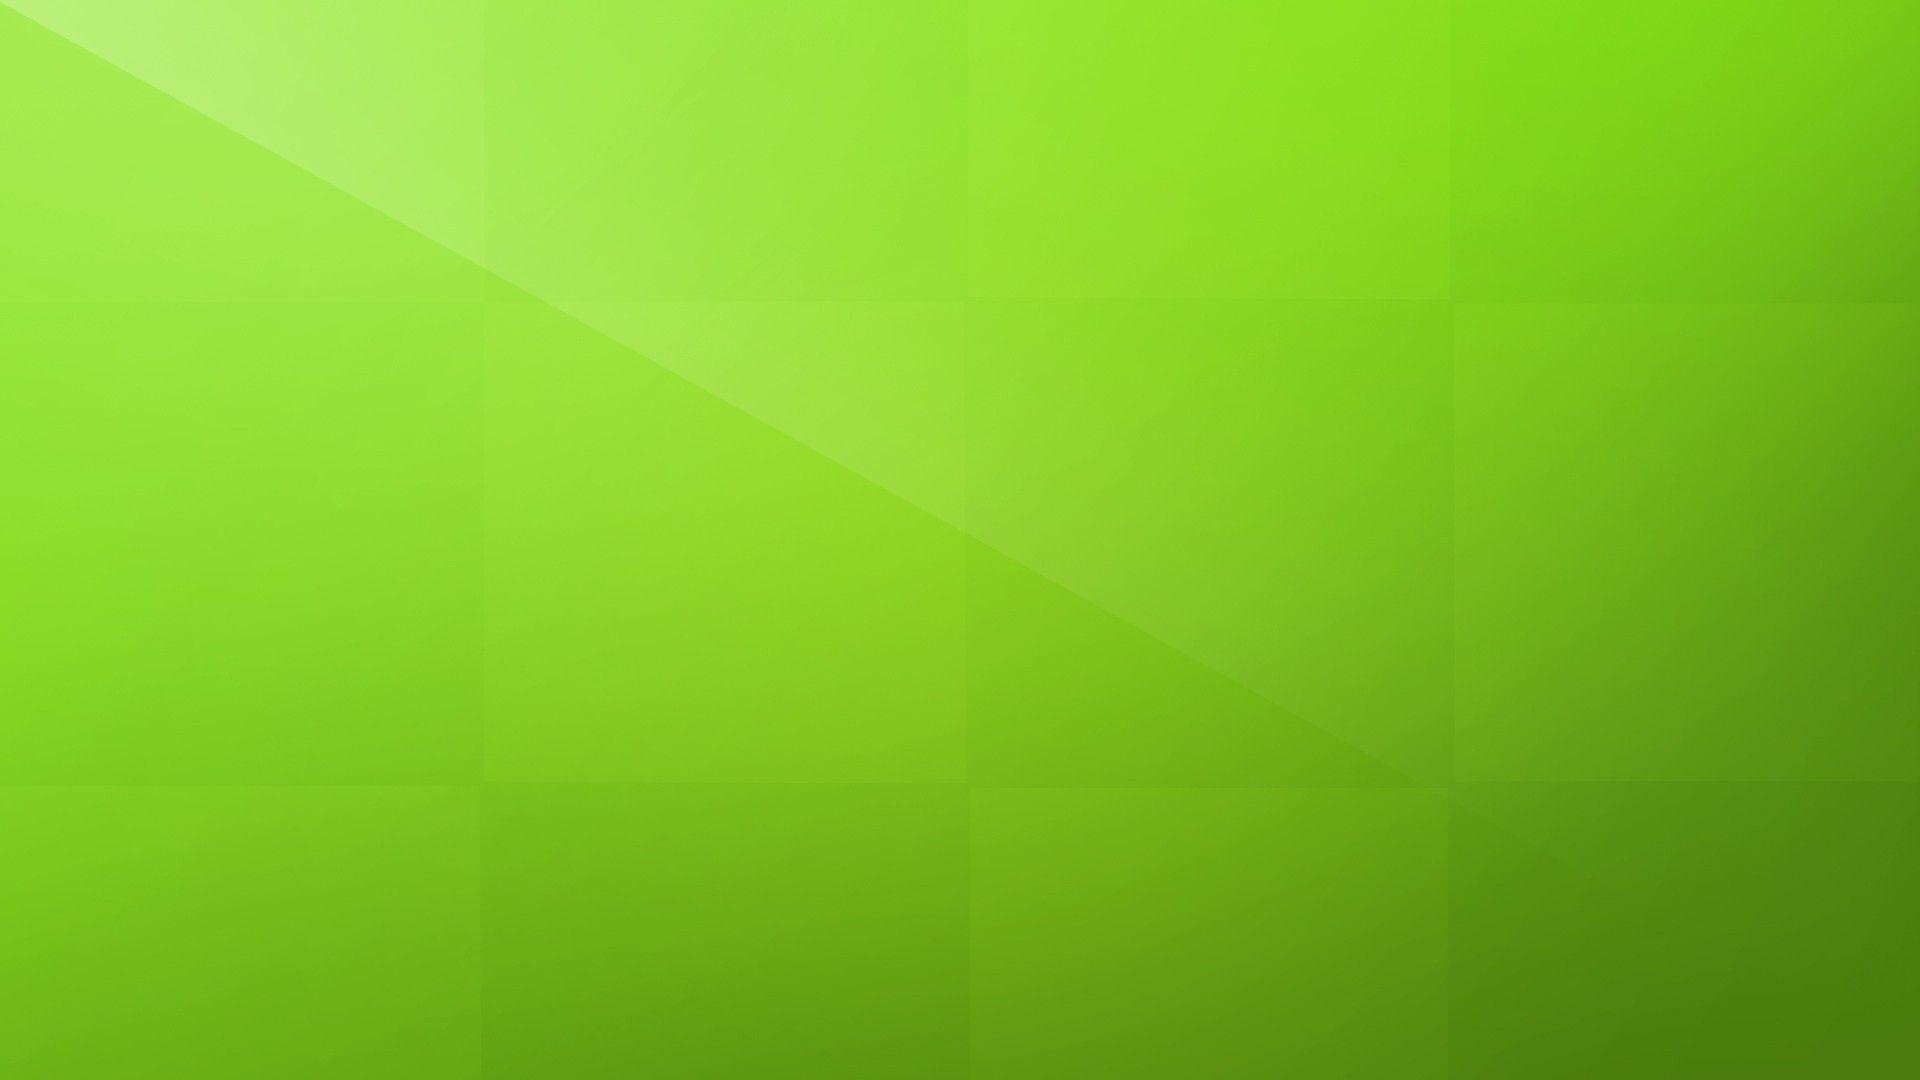 solid bright green background - photo #37